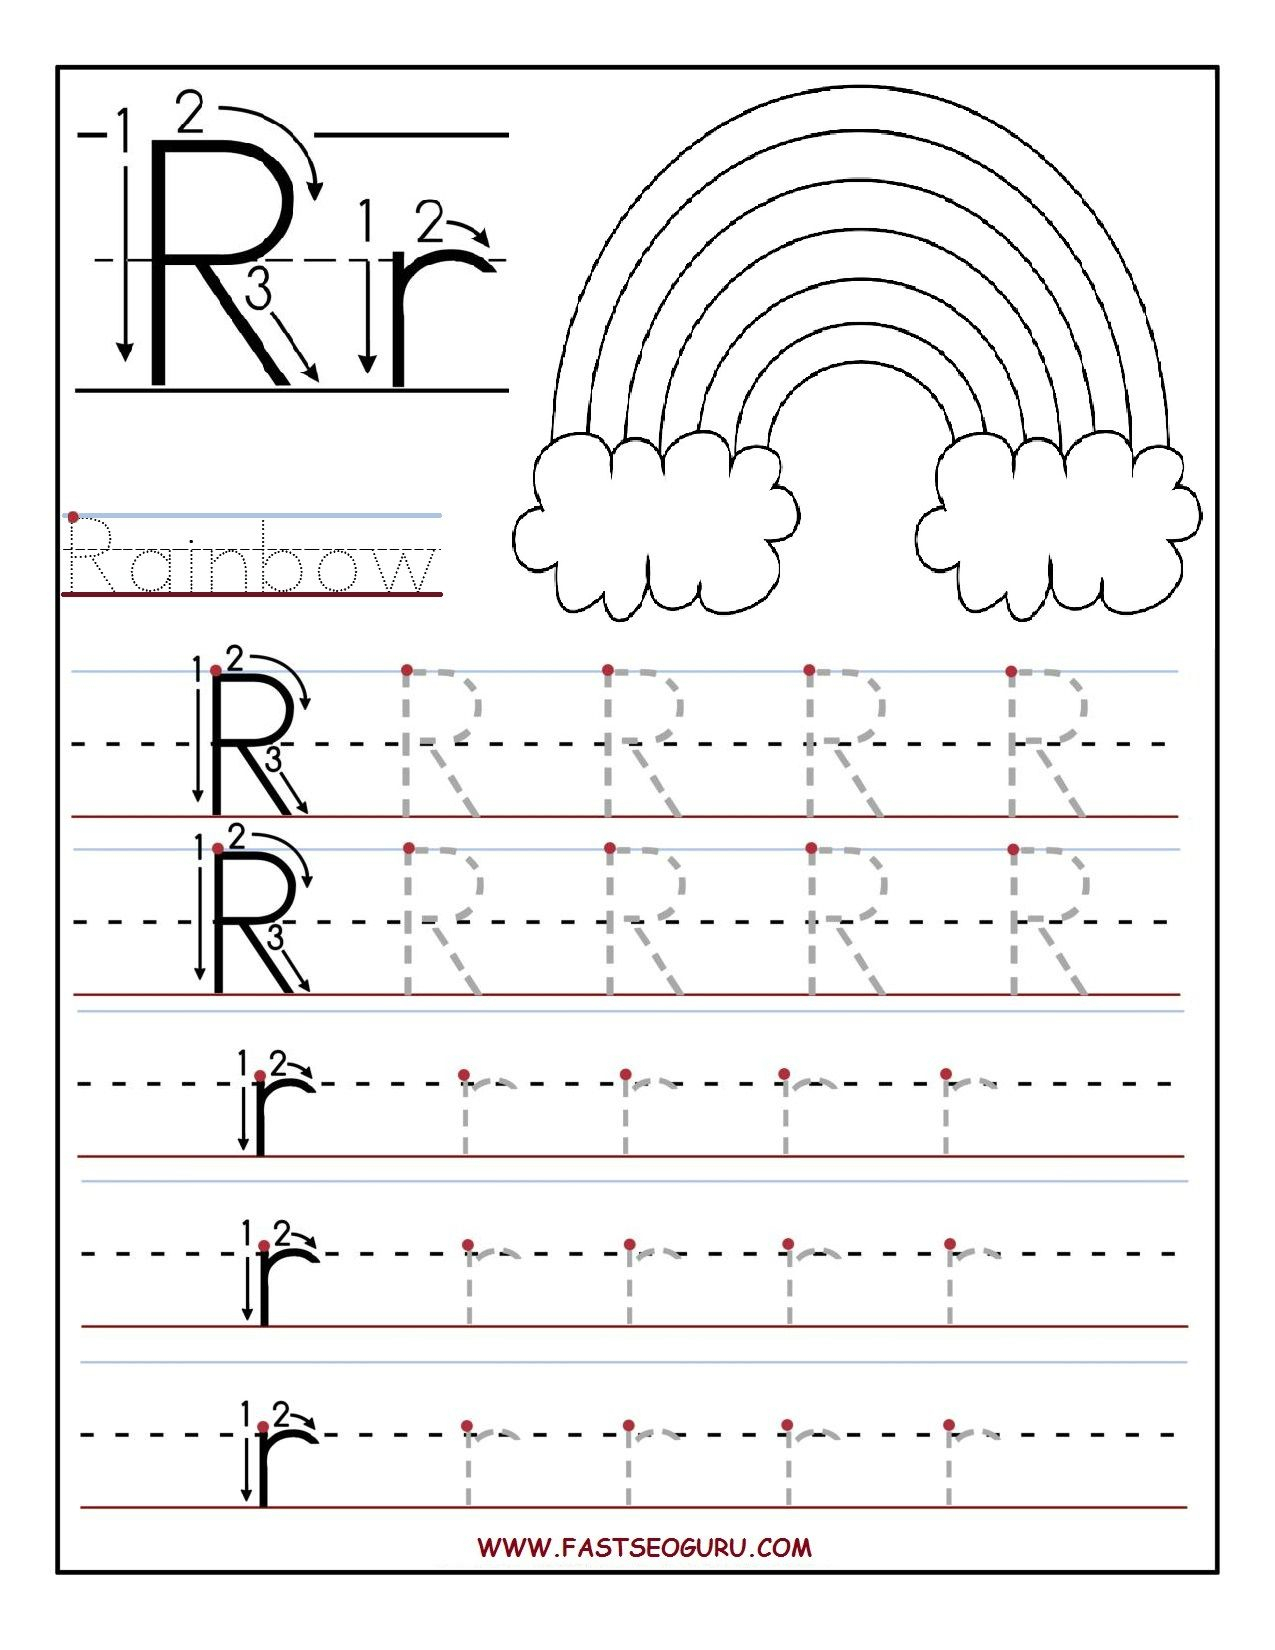 Printable Letter R Tracing Worksheets For Preschool within Alphabet Review Worksheets For Pre-K